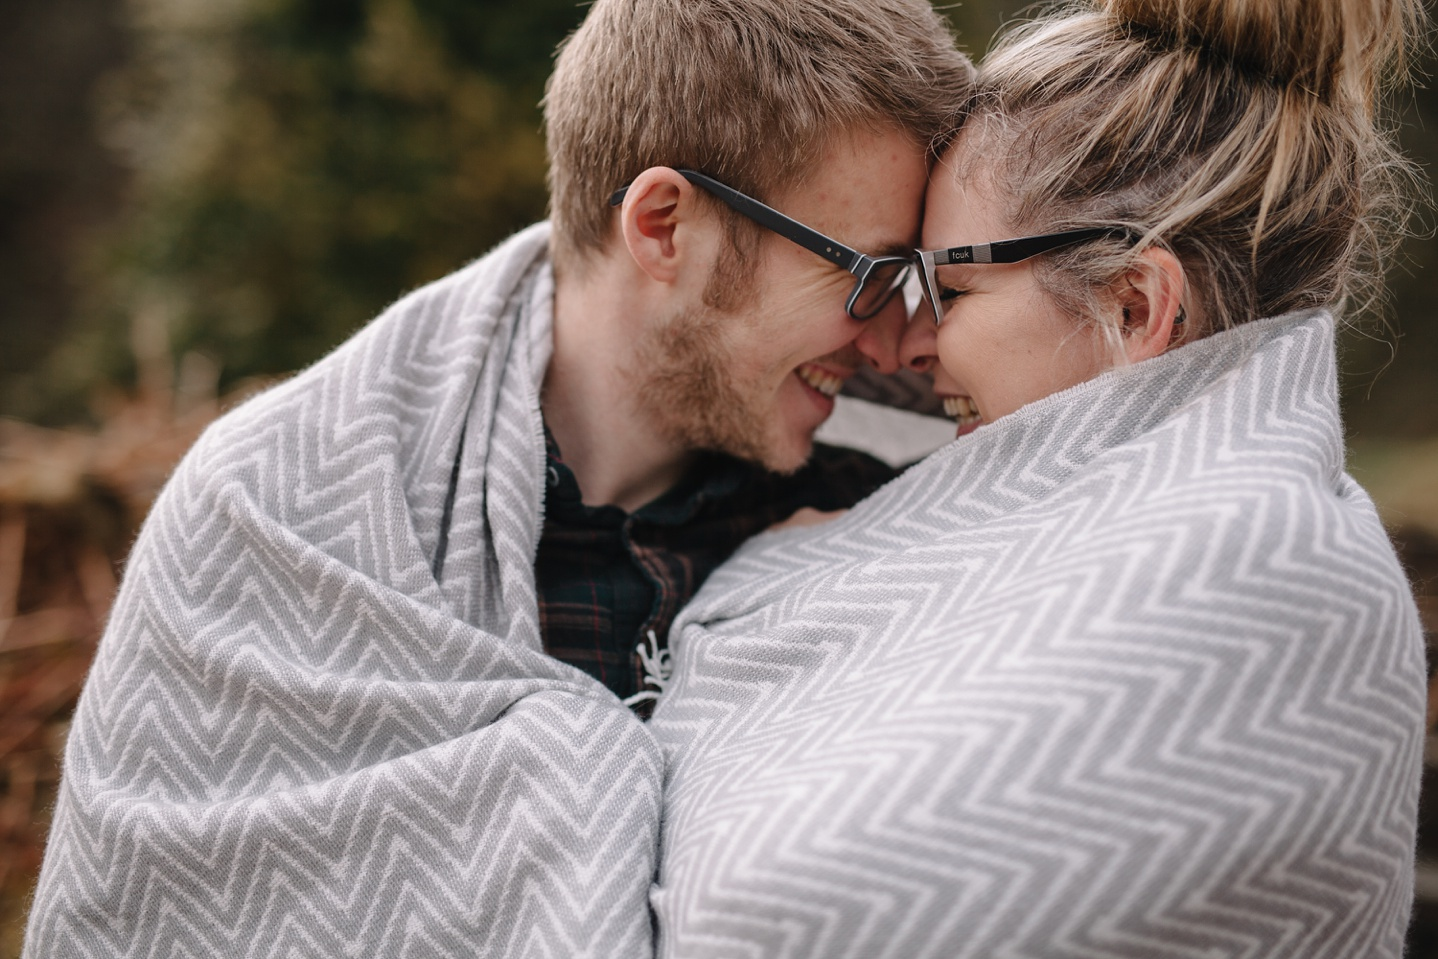 engagement photography of man and woman wrapped up in a grey blanket cuddling